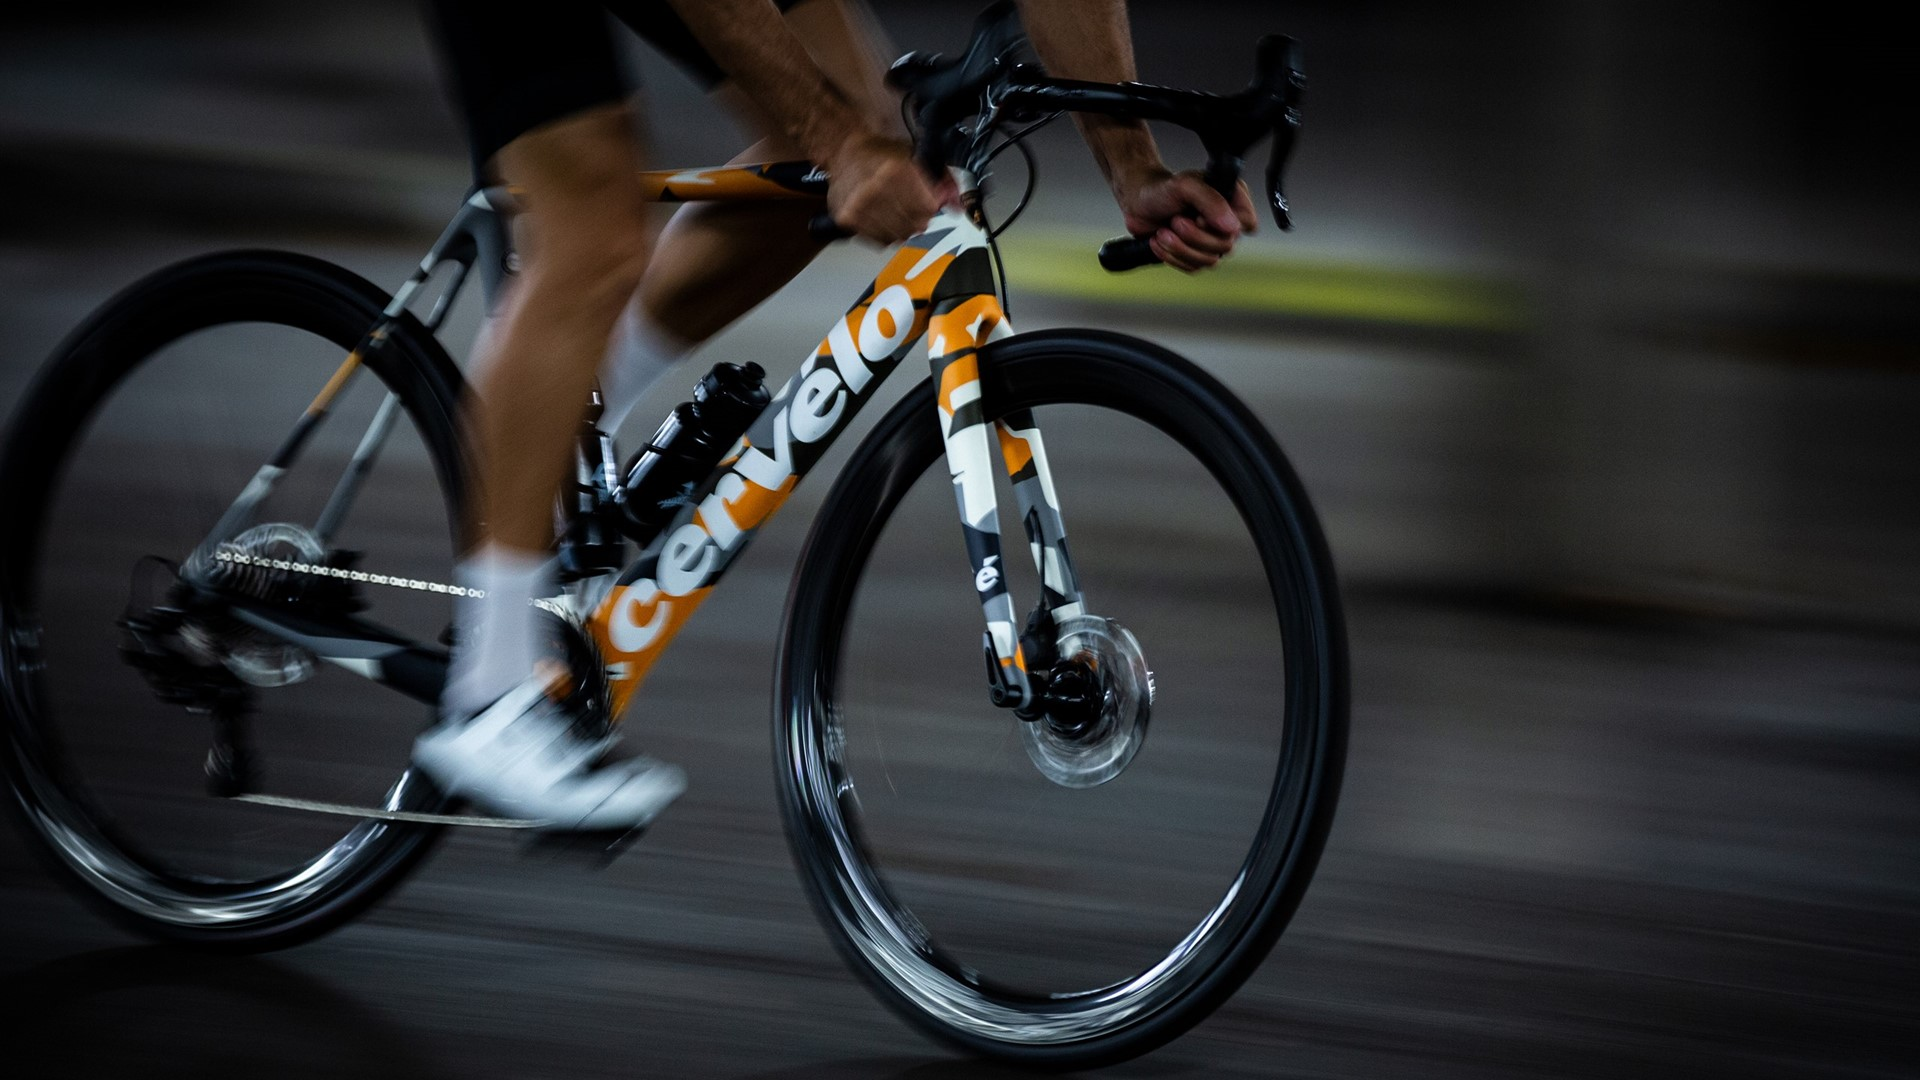 Automobili Lamborghini and Cervélo present the new R5 bicycle in a limited edition - Image 4